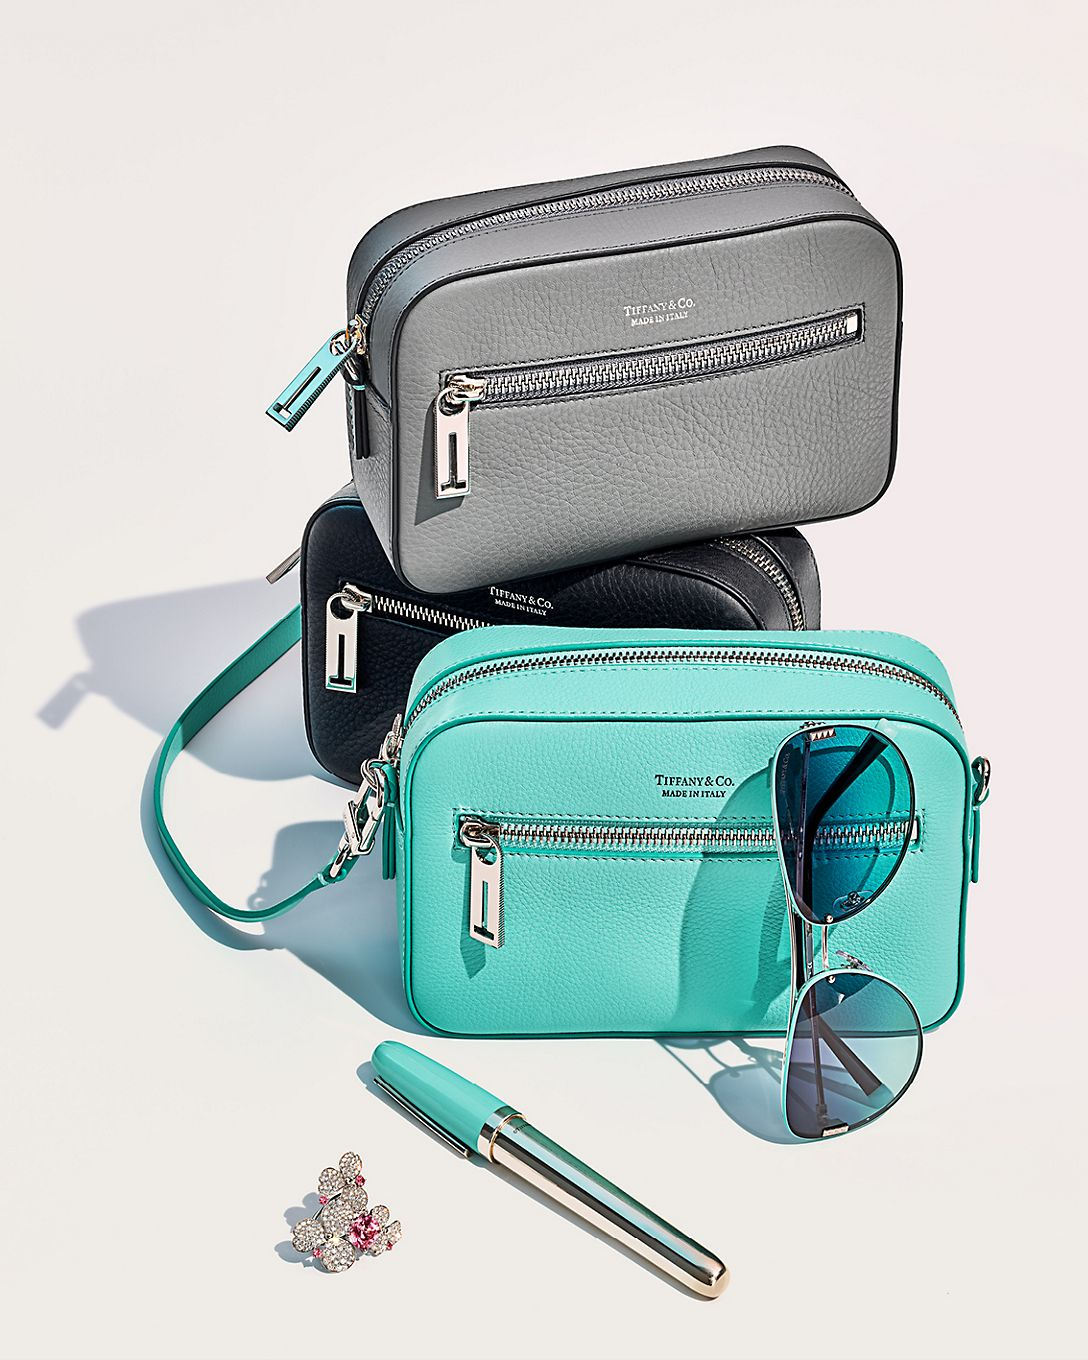 Shop Tiffany & Co. Women's Accessories